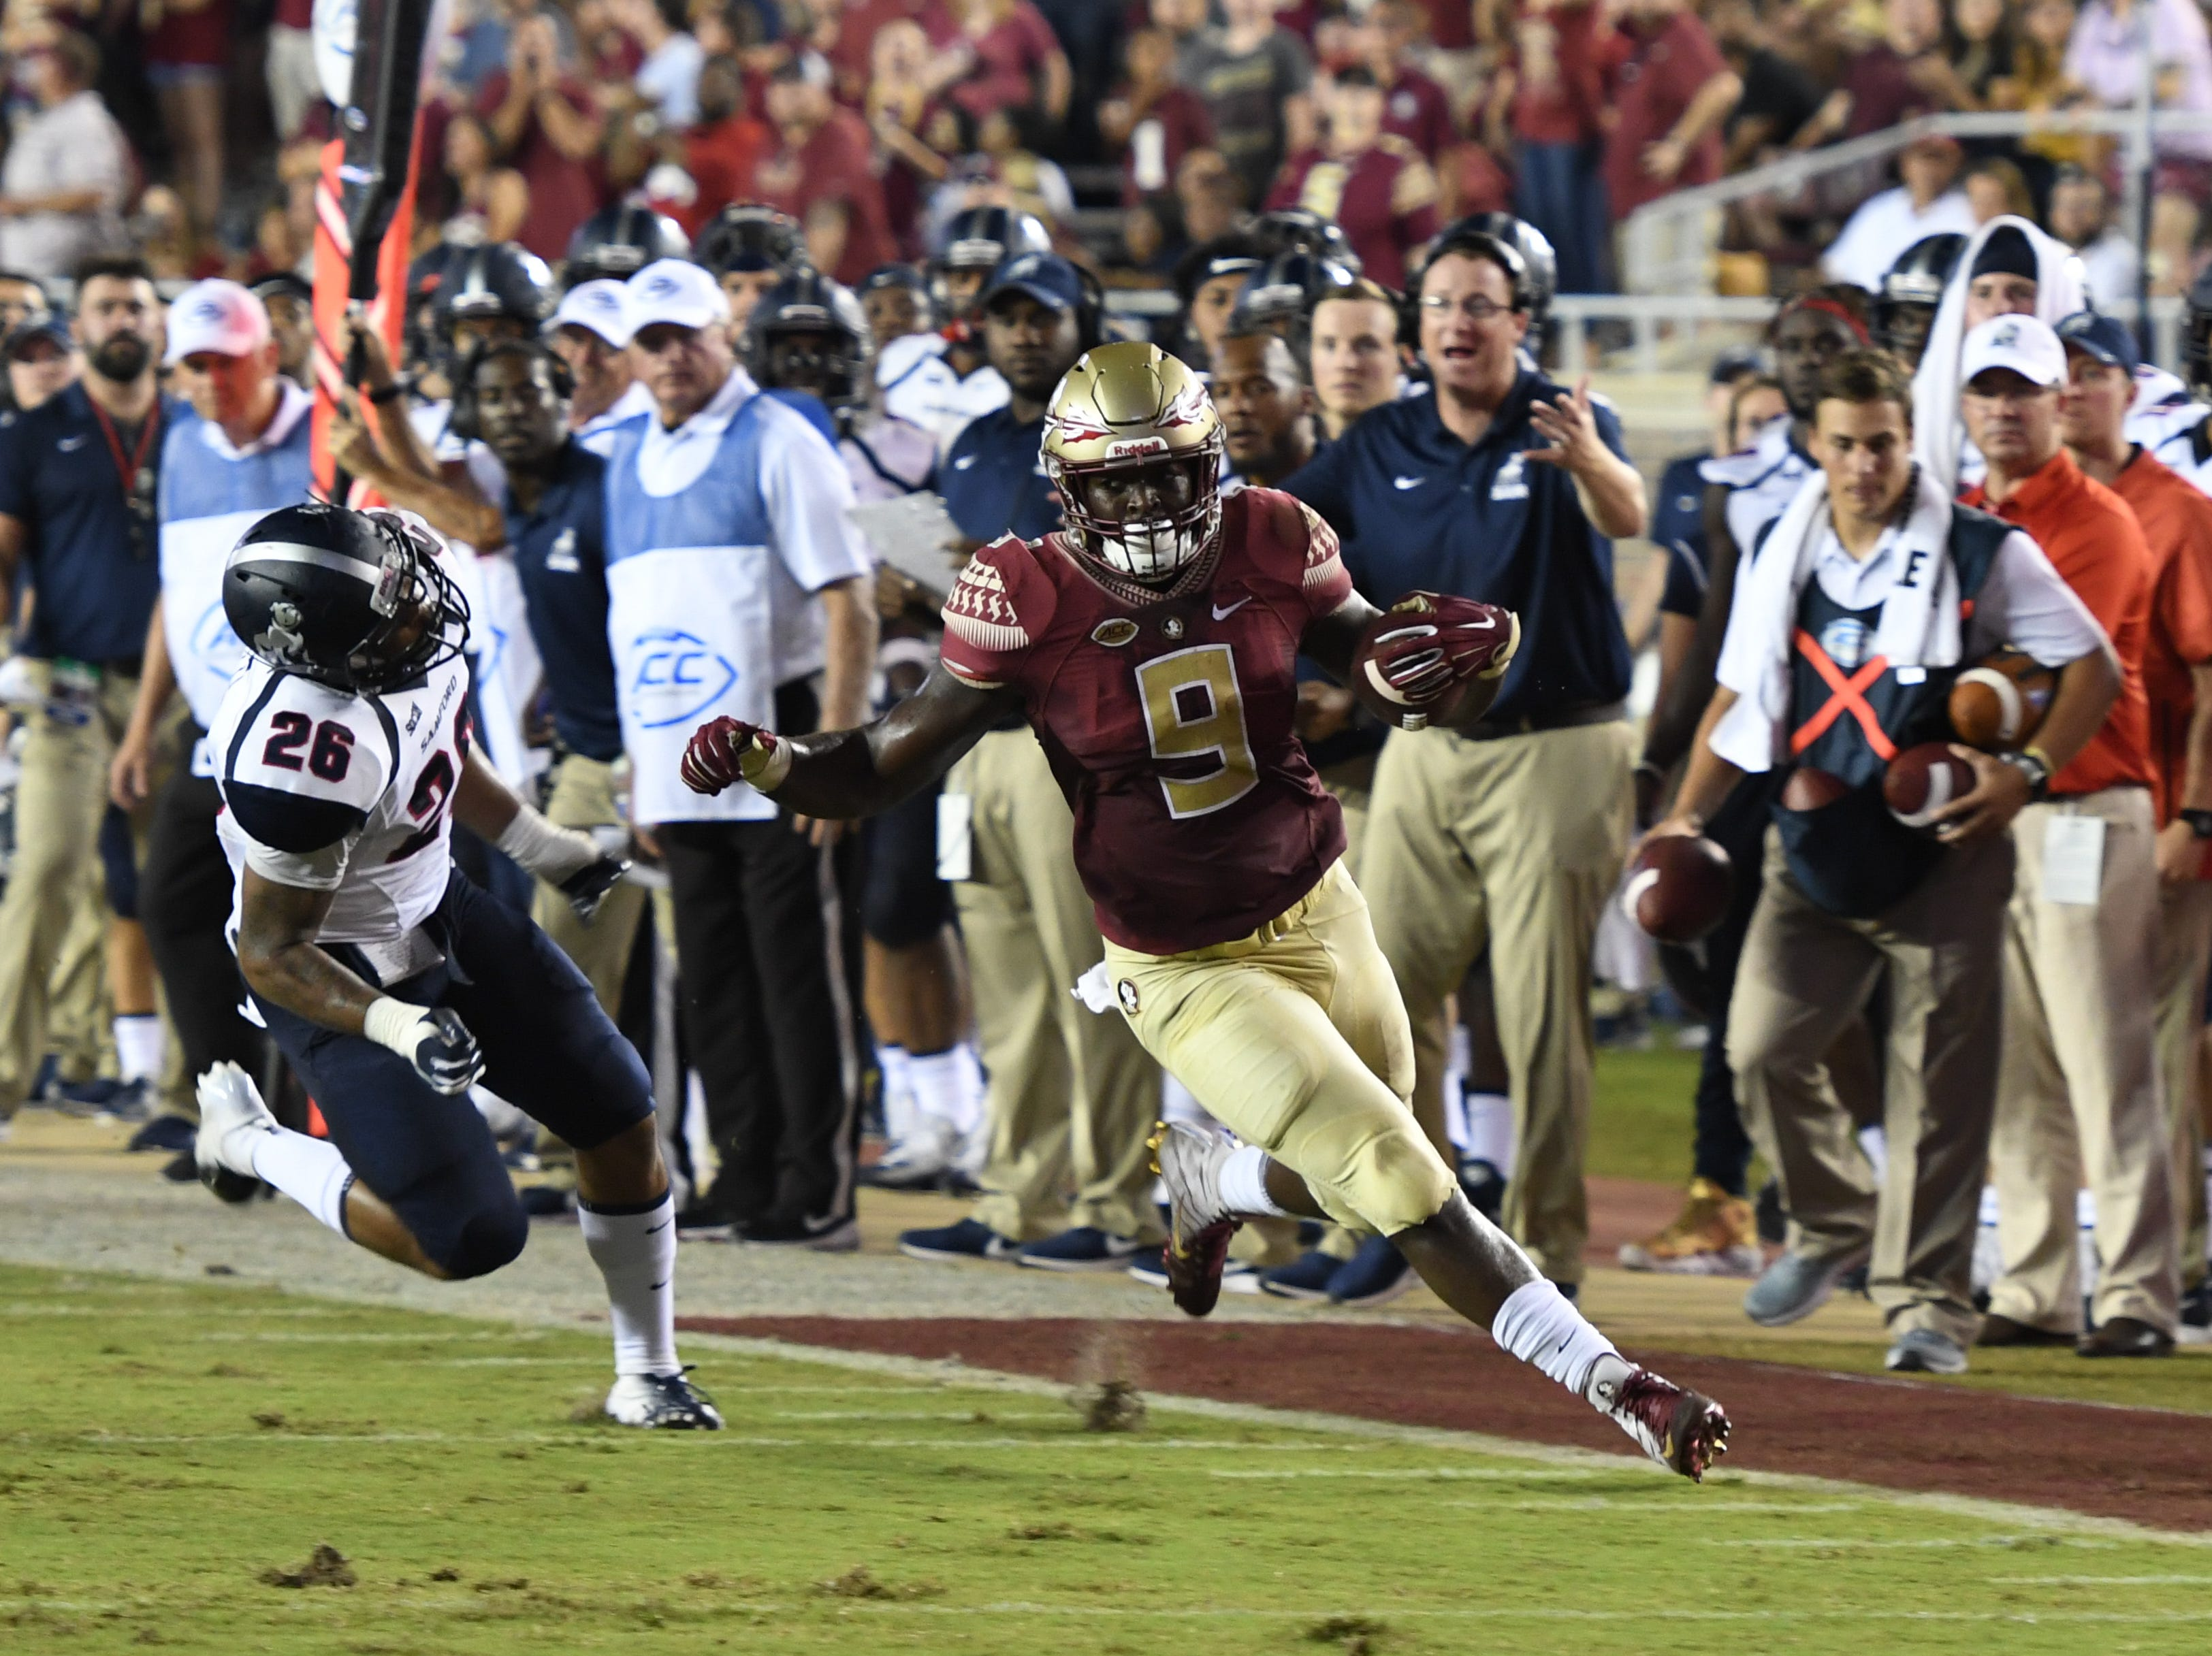 FSU senior running back Jacques Patrick (9) breaking towards the Samford sideline during the second quarter of FSU's game against Samford on Saturday night at Doak Campbell Stadium.